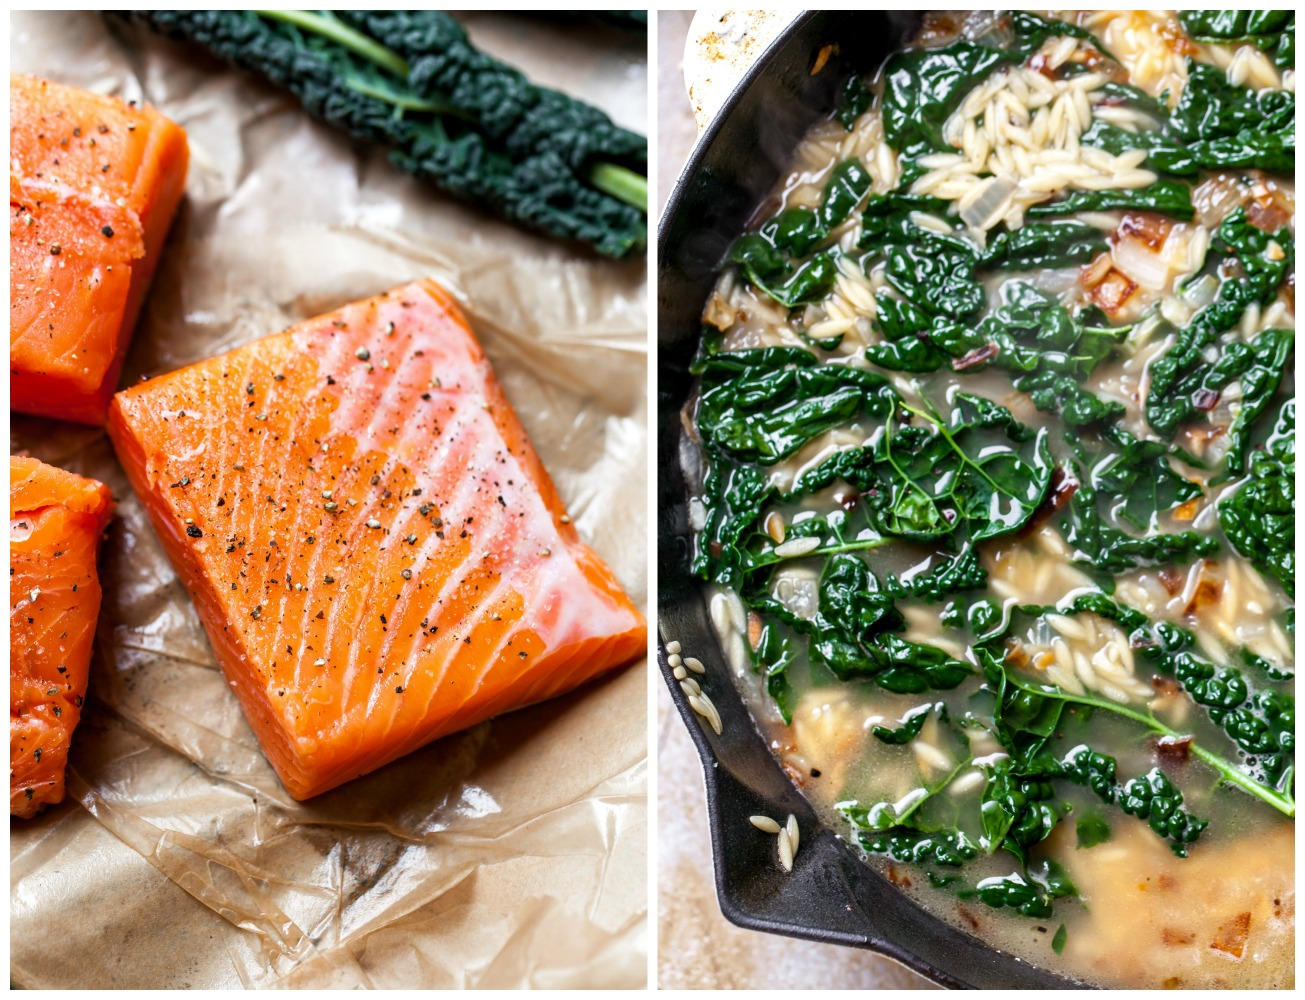 In-process view of seasoned salmon and orzo in a skillet